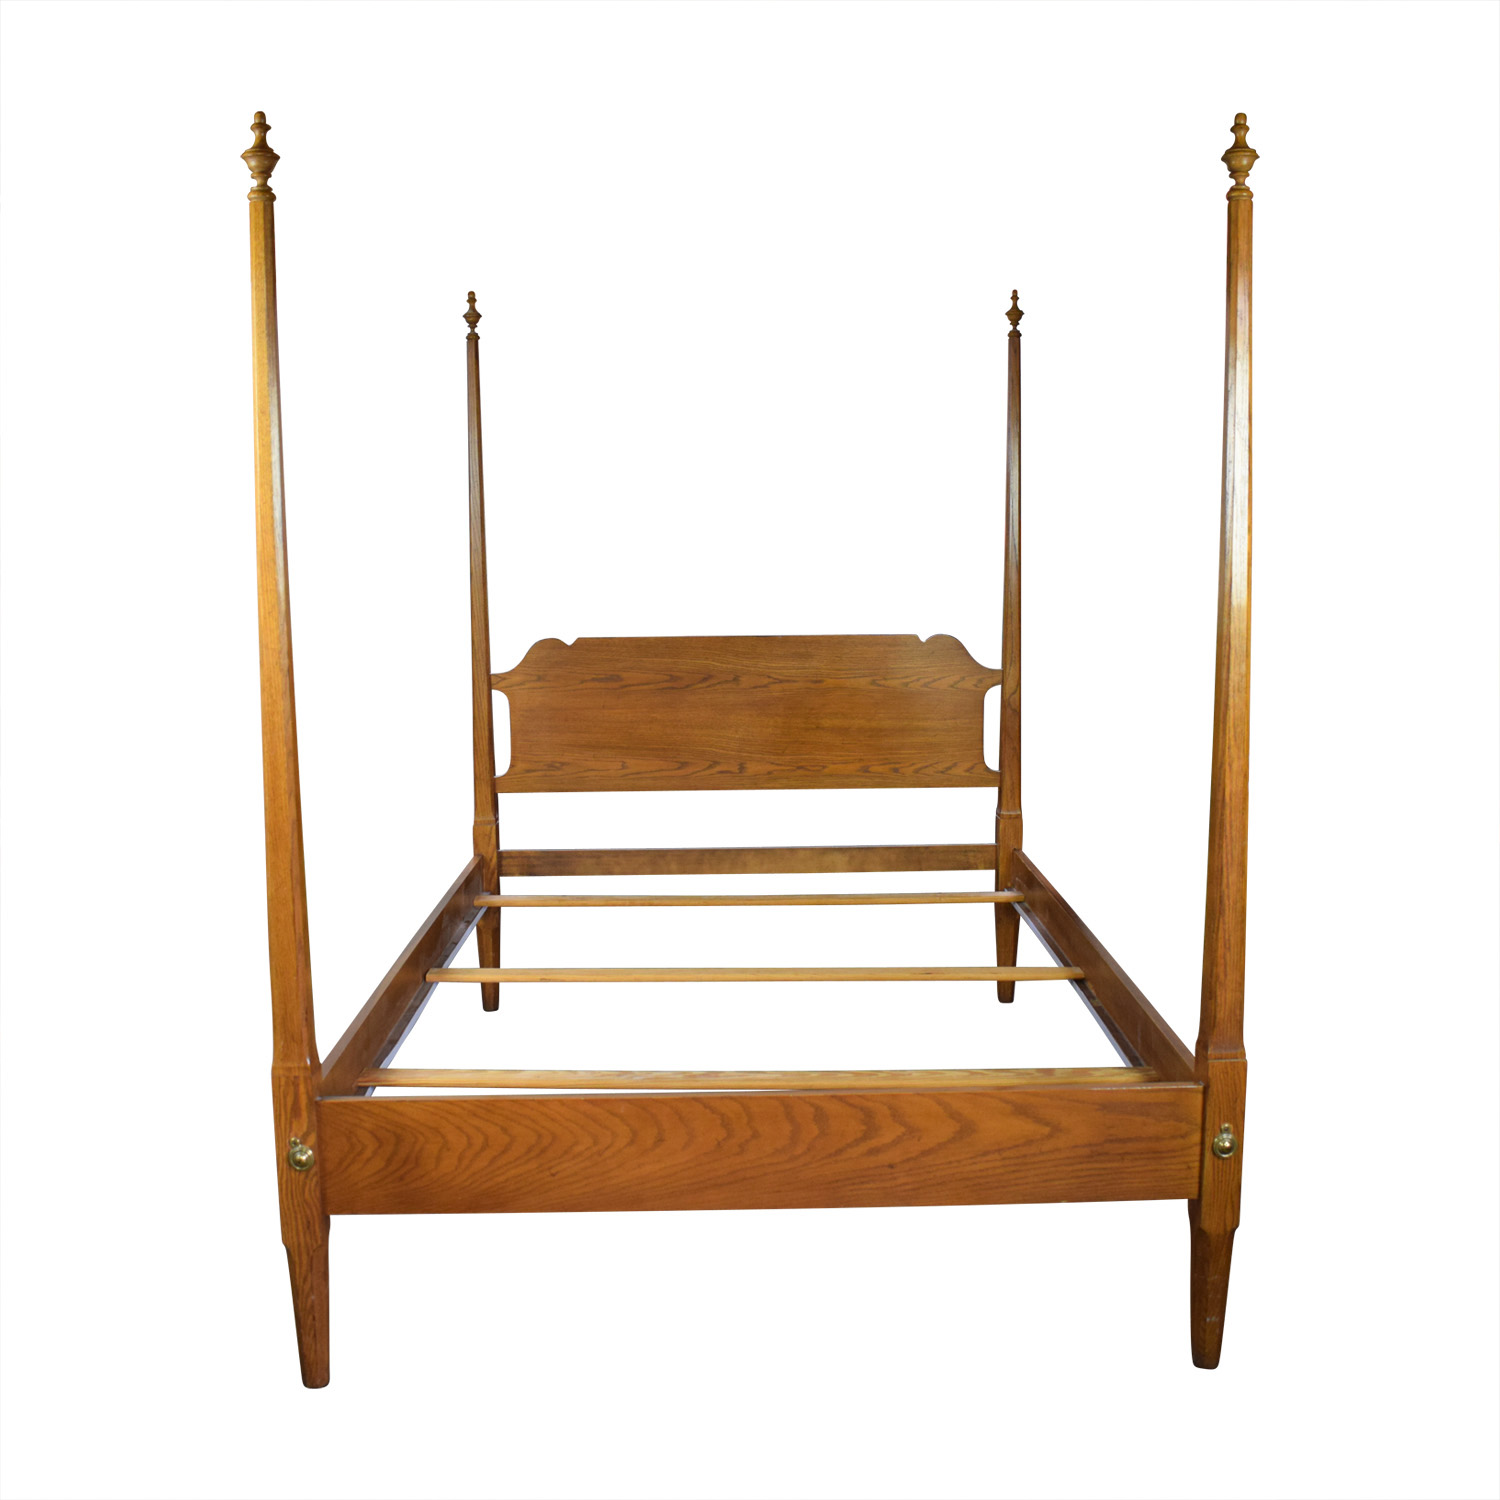 Four Poster Wood Queen Bed Frame for sale